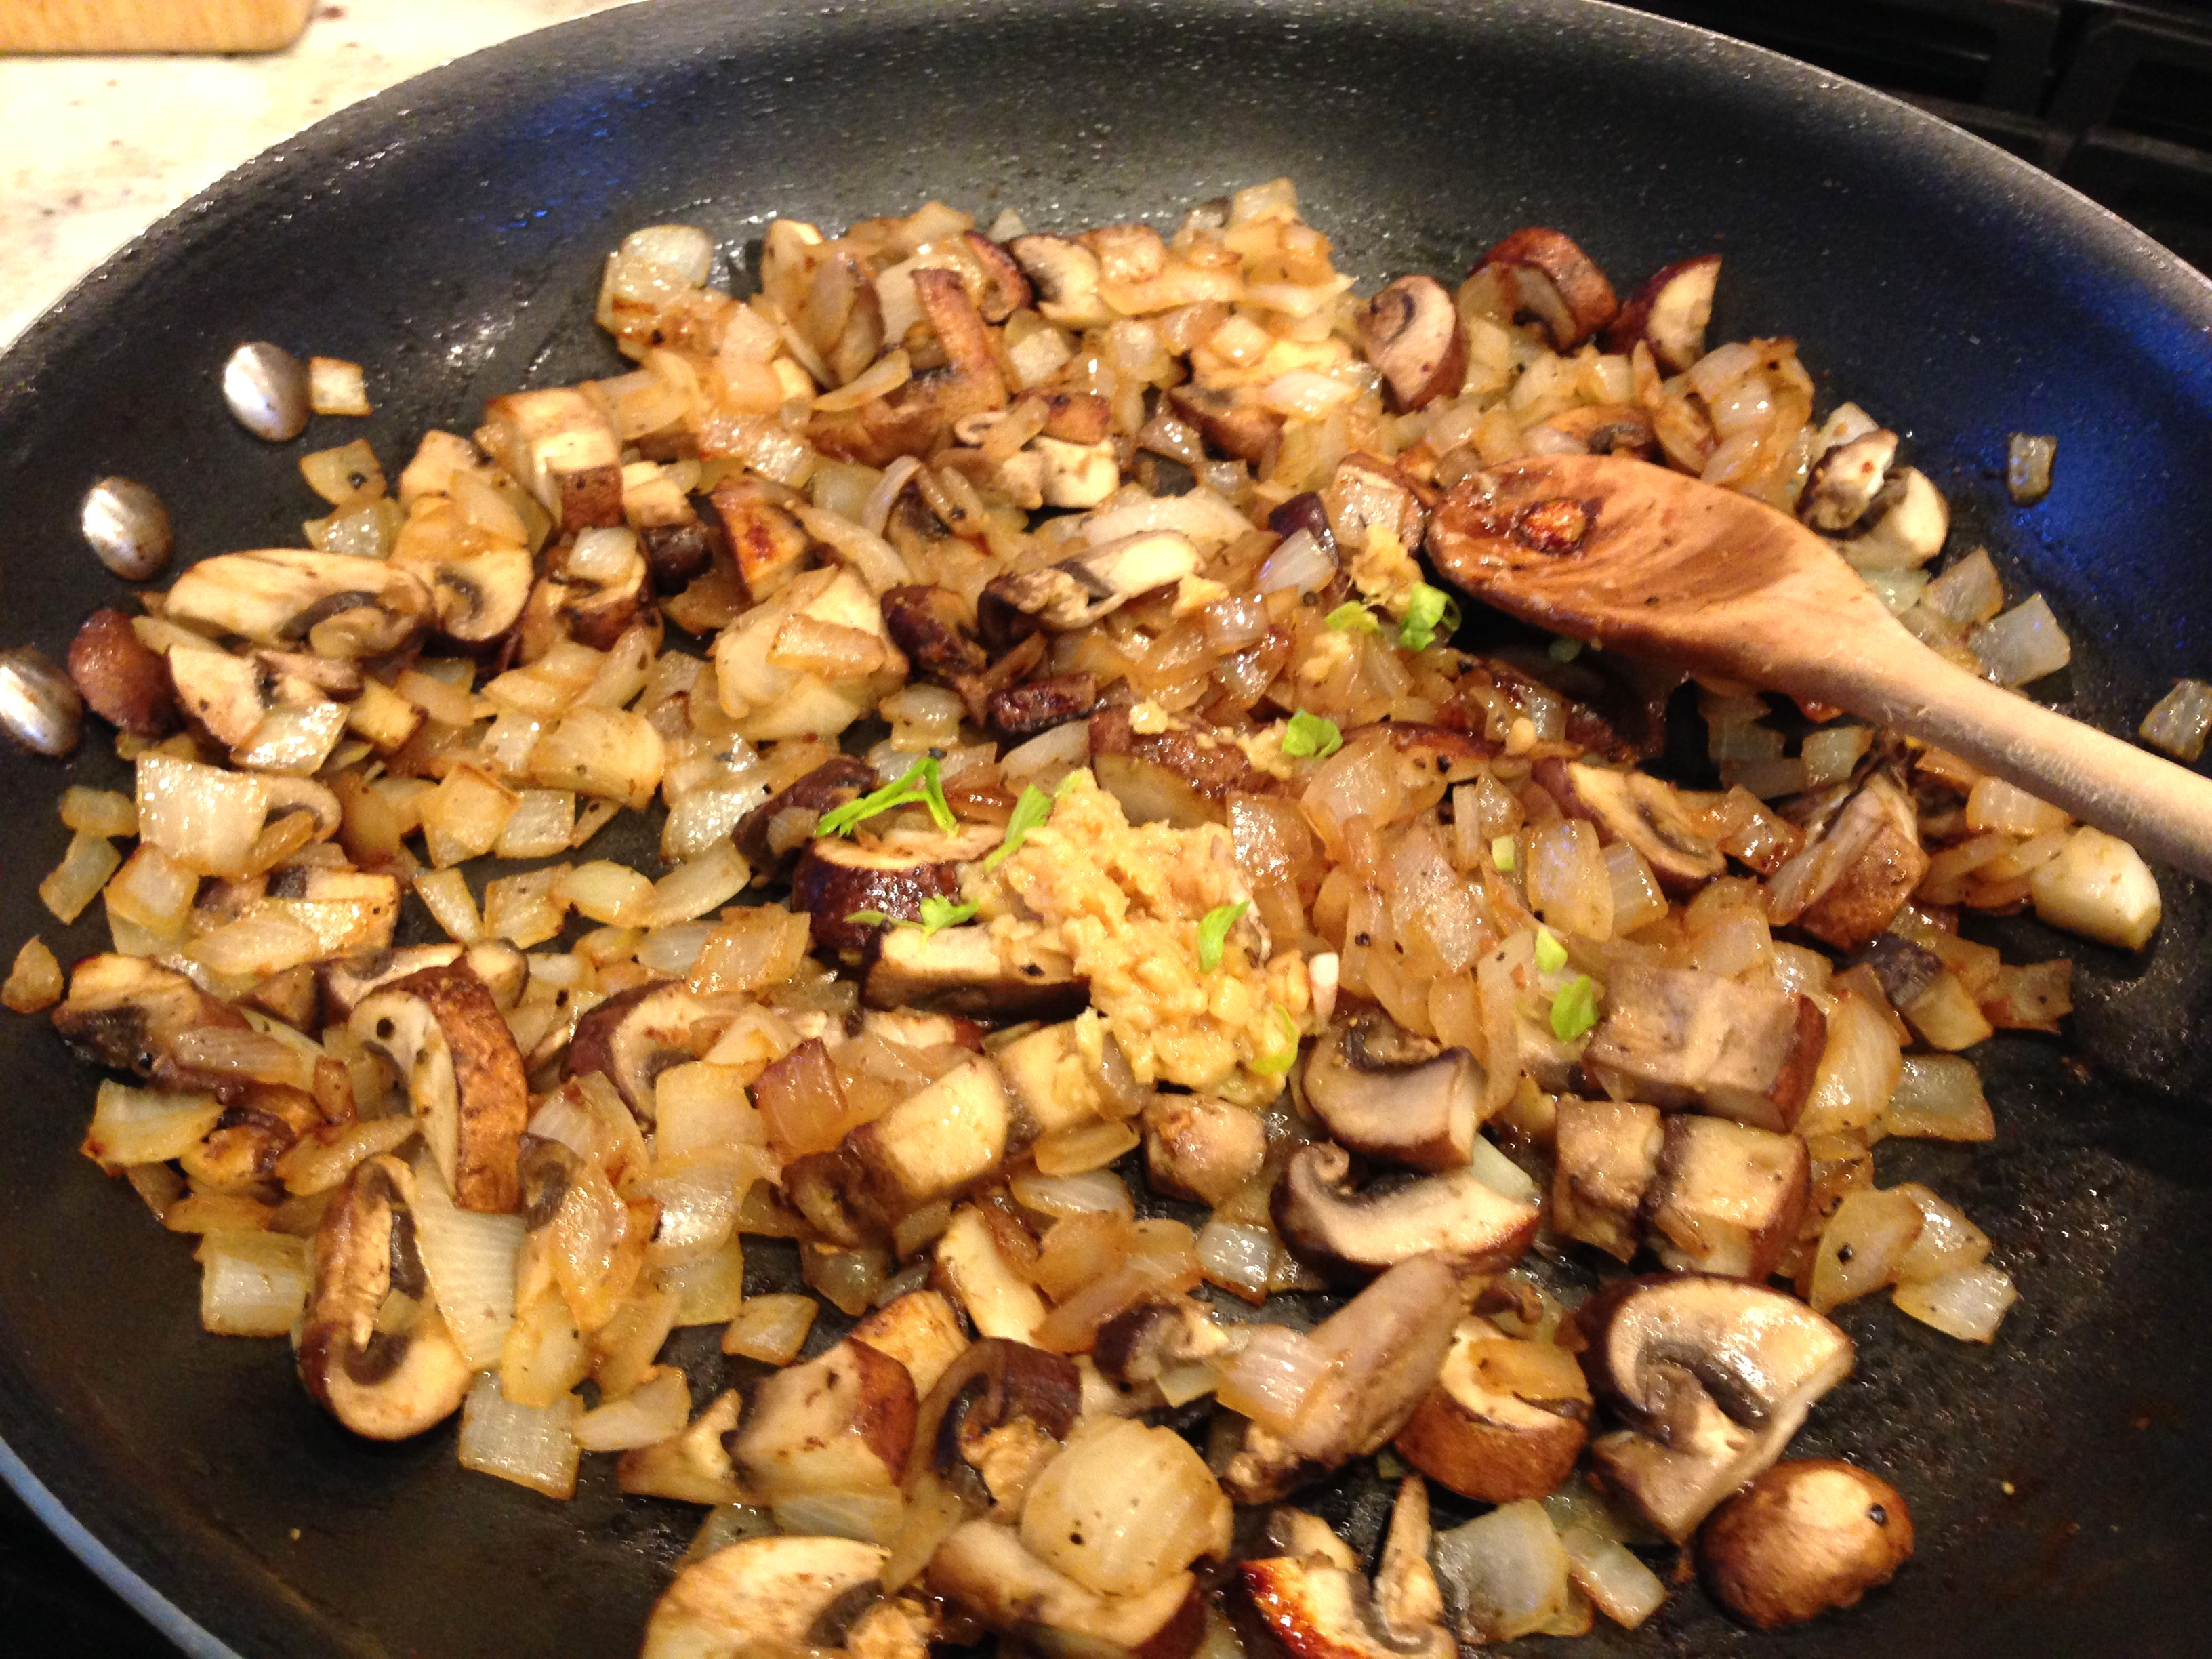 Saute mushrooms onion and garlic